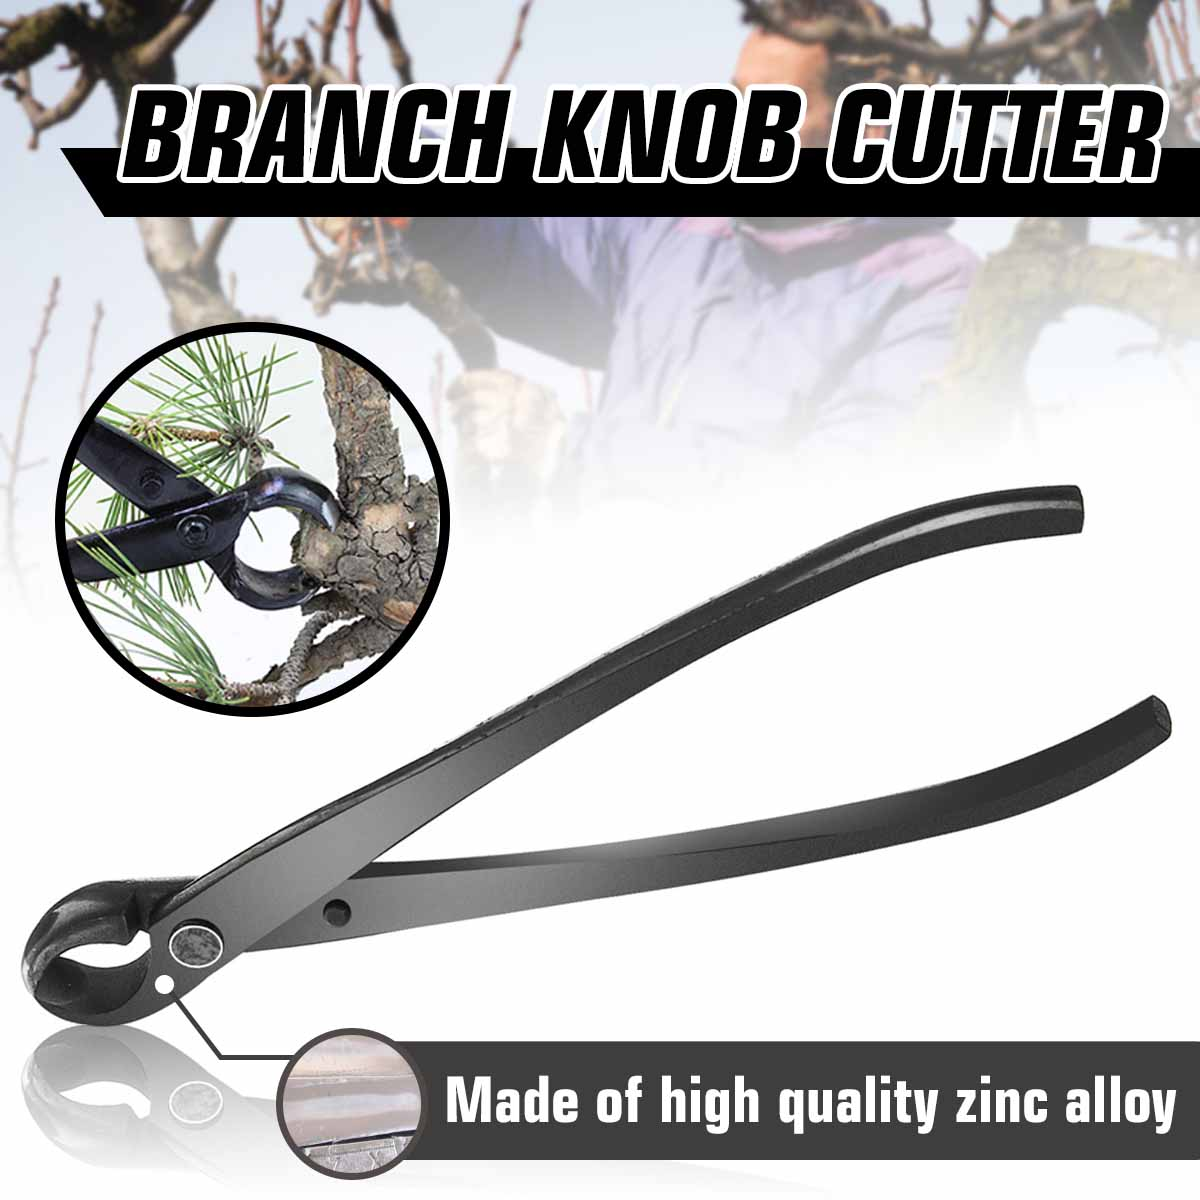 210mm Professional Round Edge Concave Knob Branch Cutter Garden Bonsai Tools Purner Scissors Cutter Knife